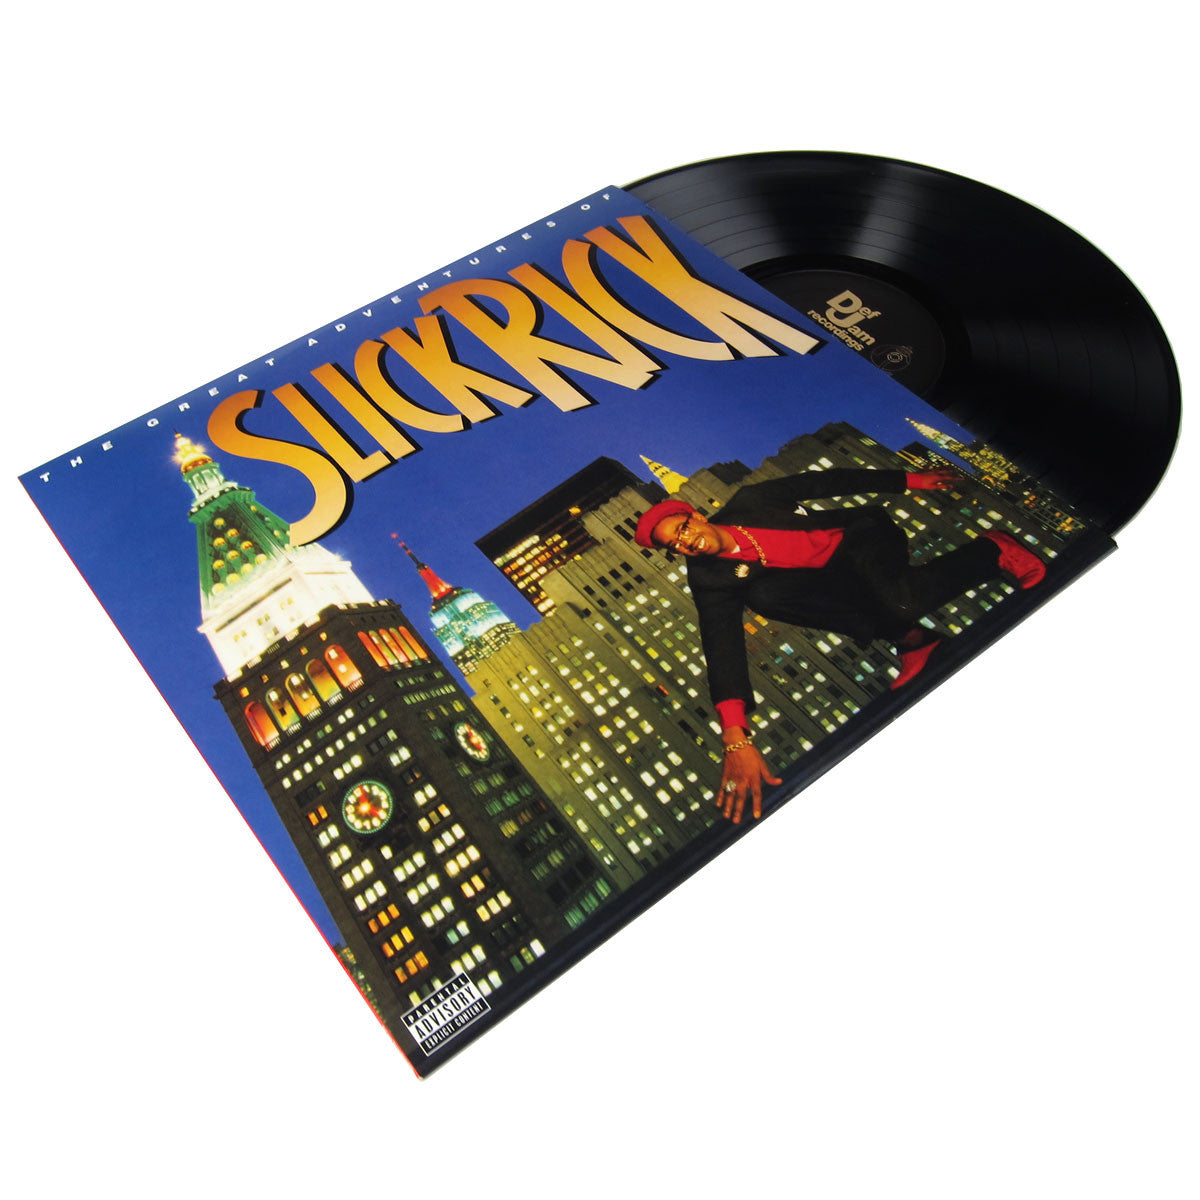 Slick Rick: The Great Adventrues of Slick Rick Vinyl LP